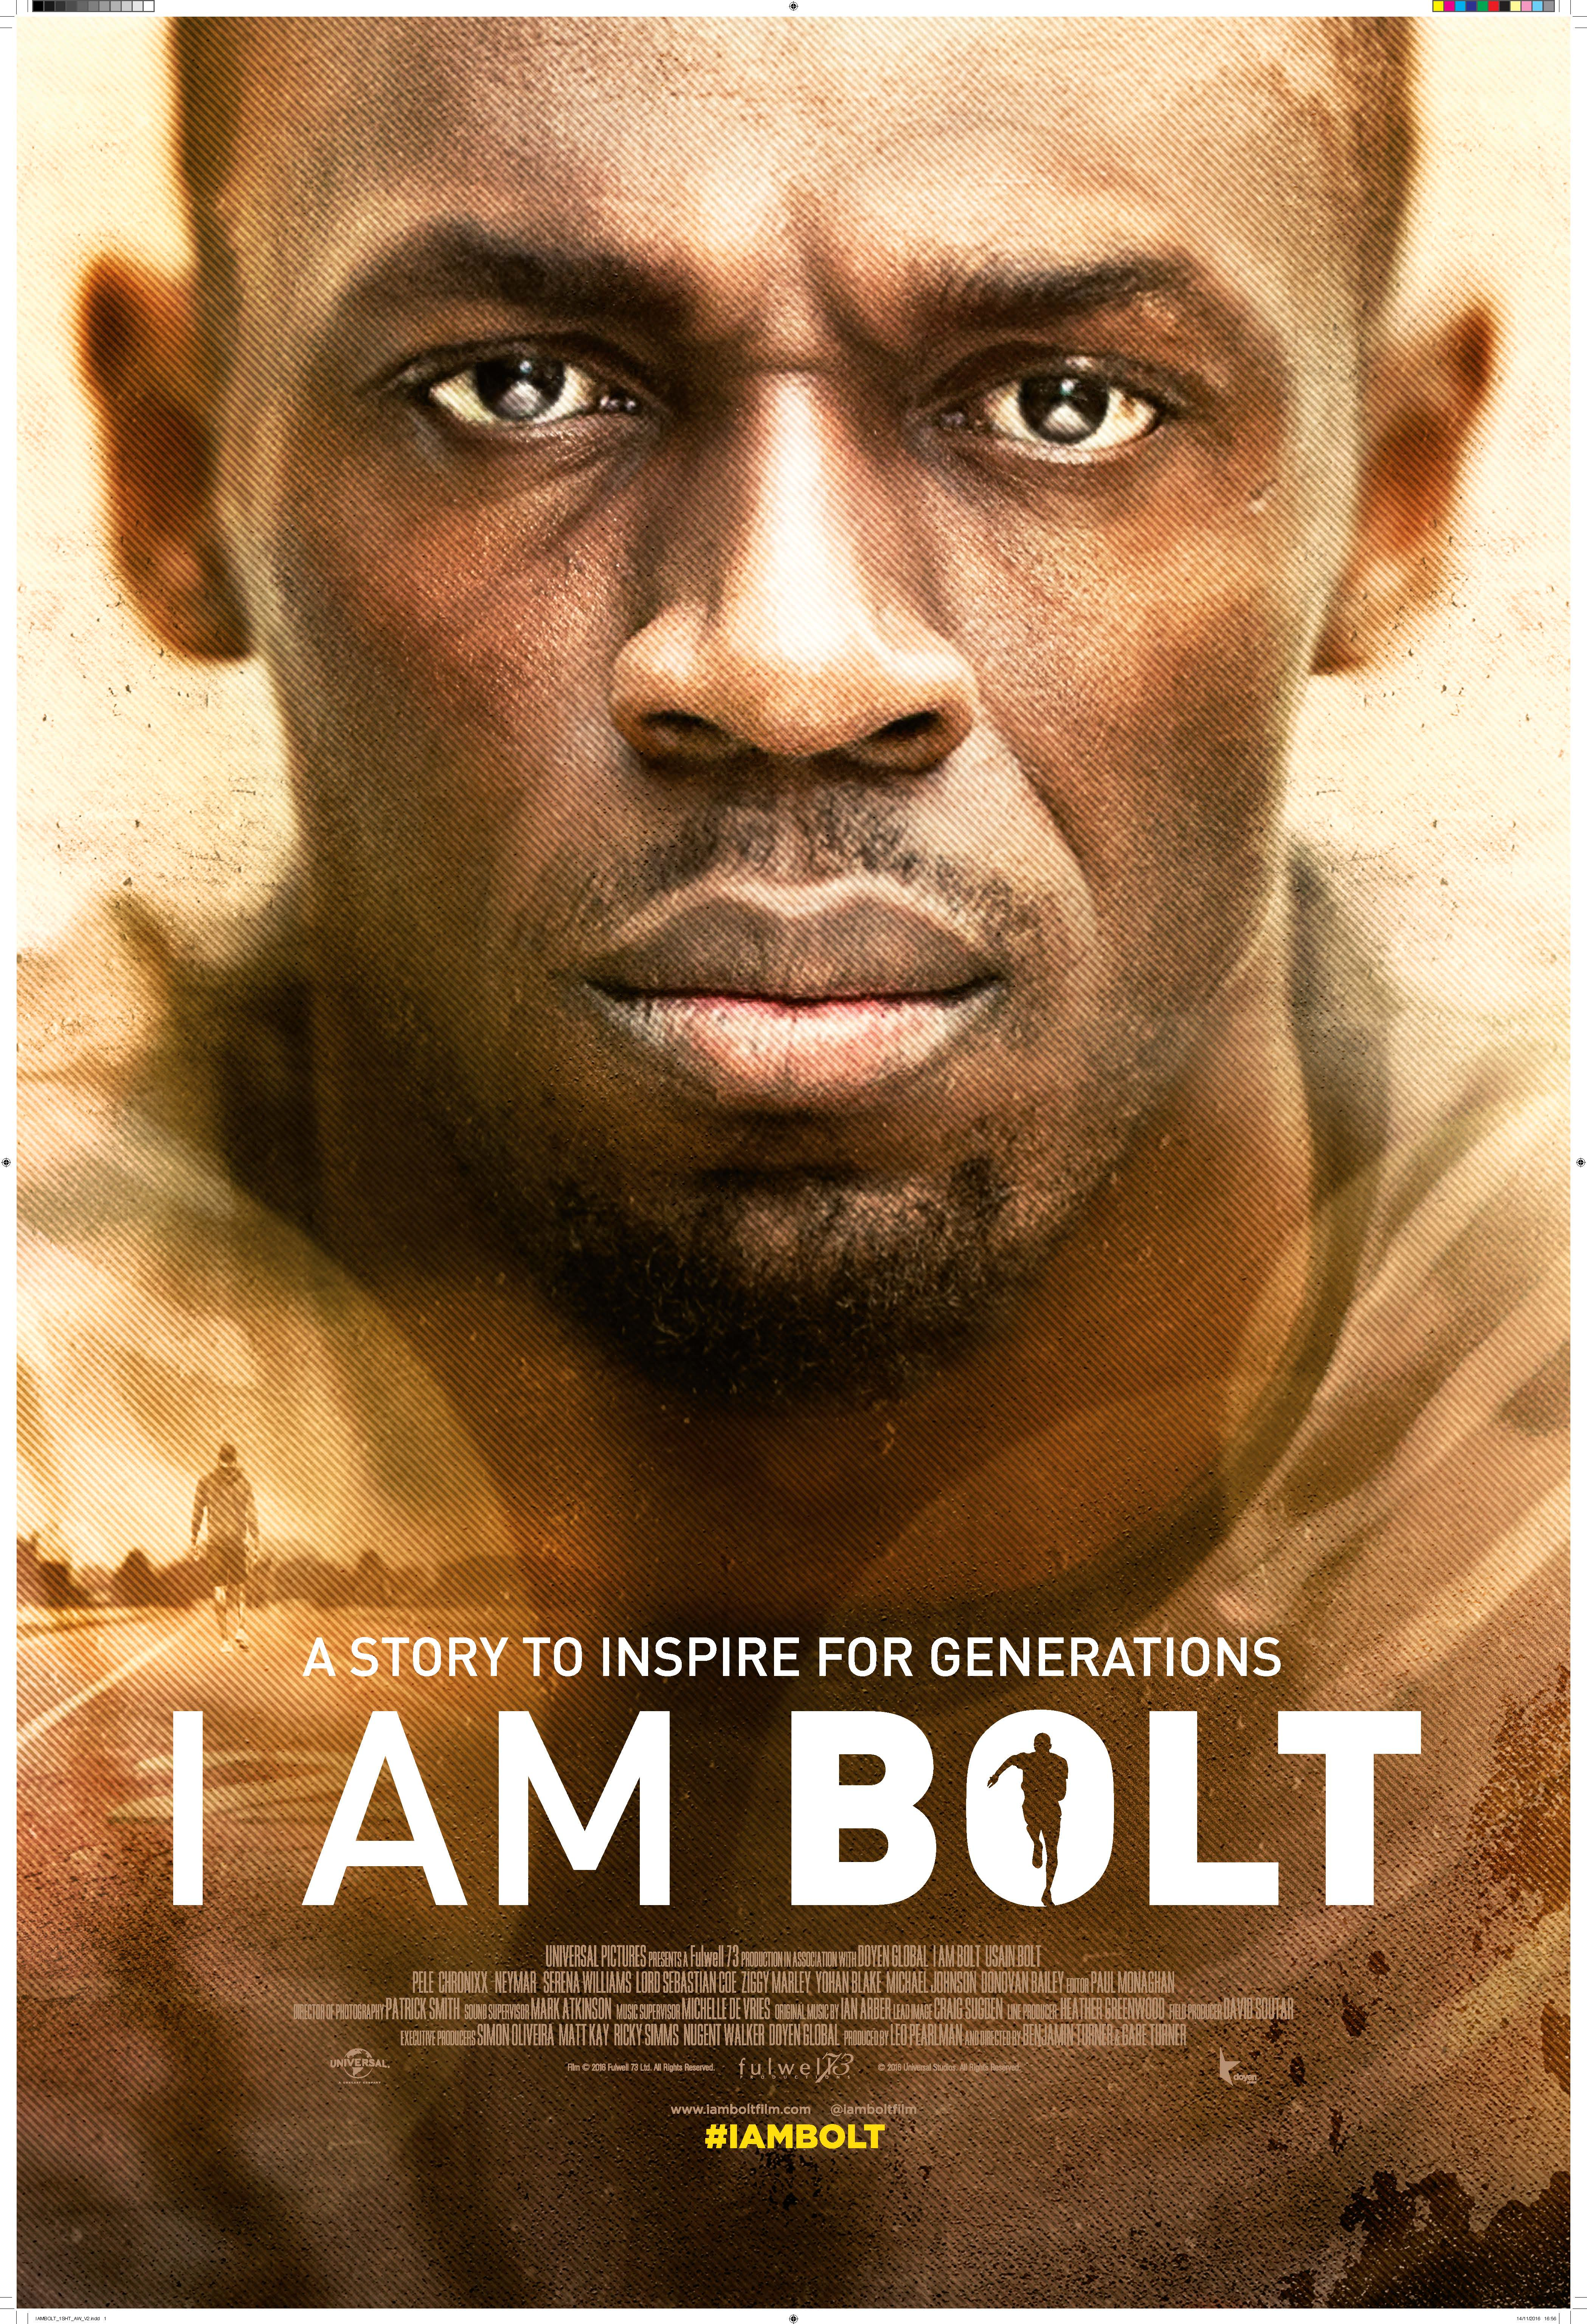 CaribbeanLens Film Festival- I Am Bolt Screening